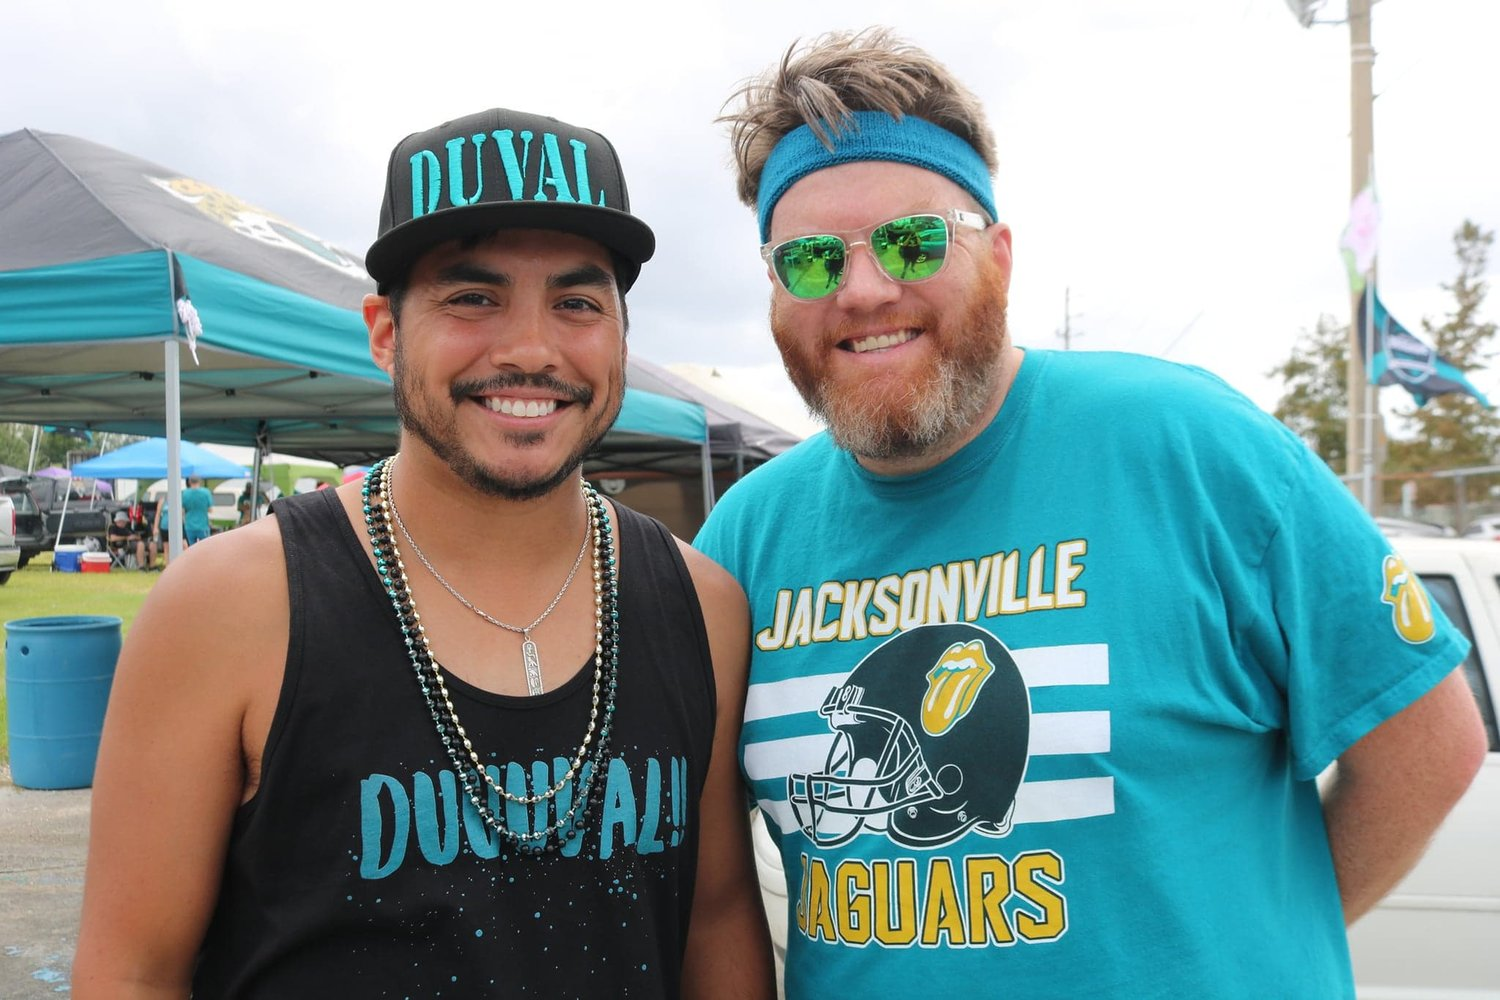 Fans (left to right), James Hamilton and Steve Krajewski, pose for the camera with Krajewski wearing his teal sweatband in support of Minshew II.